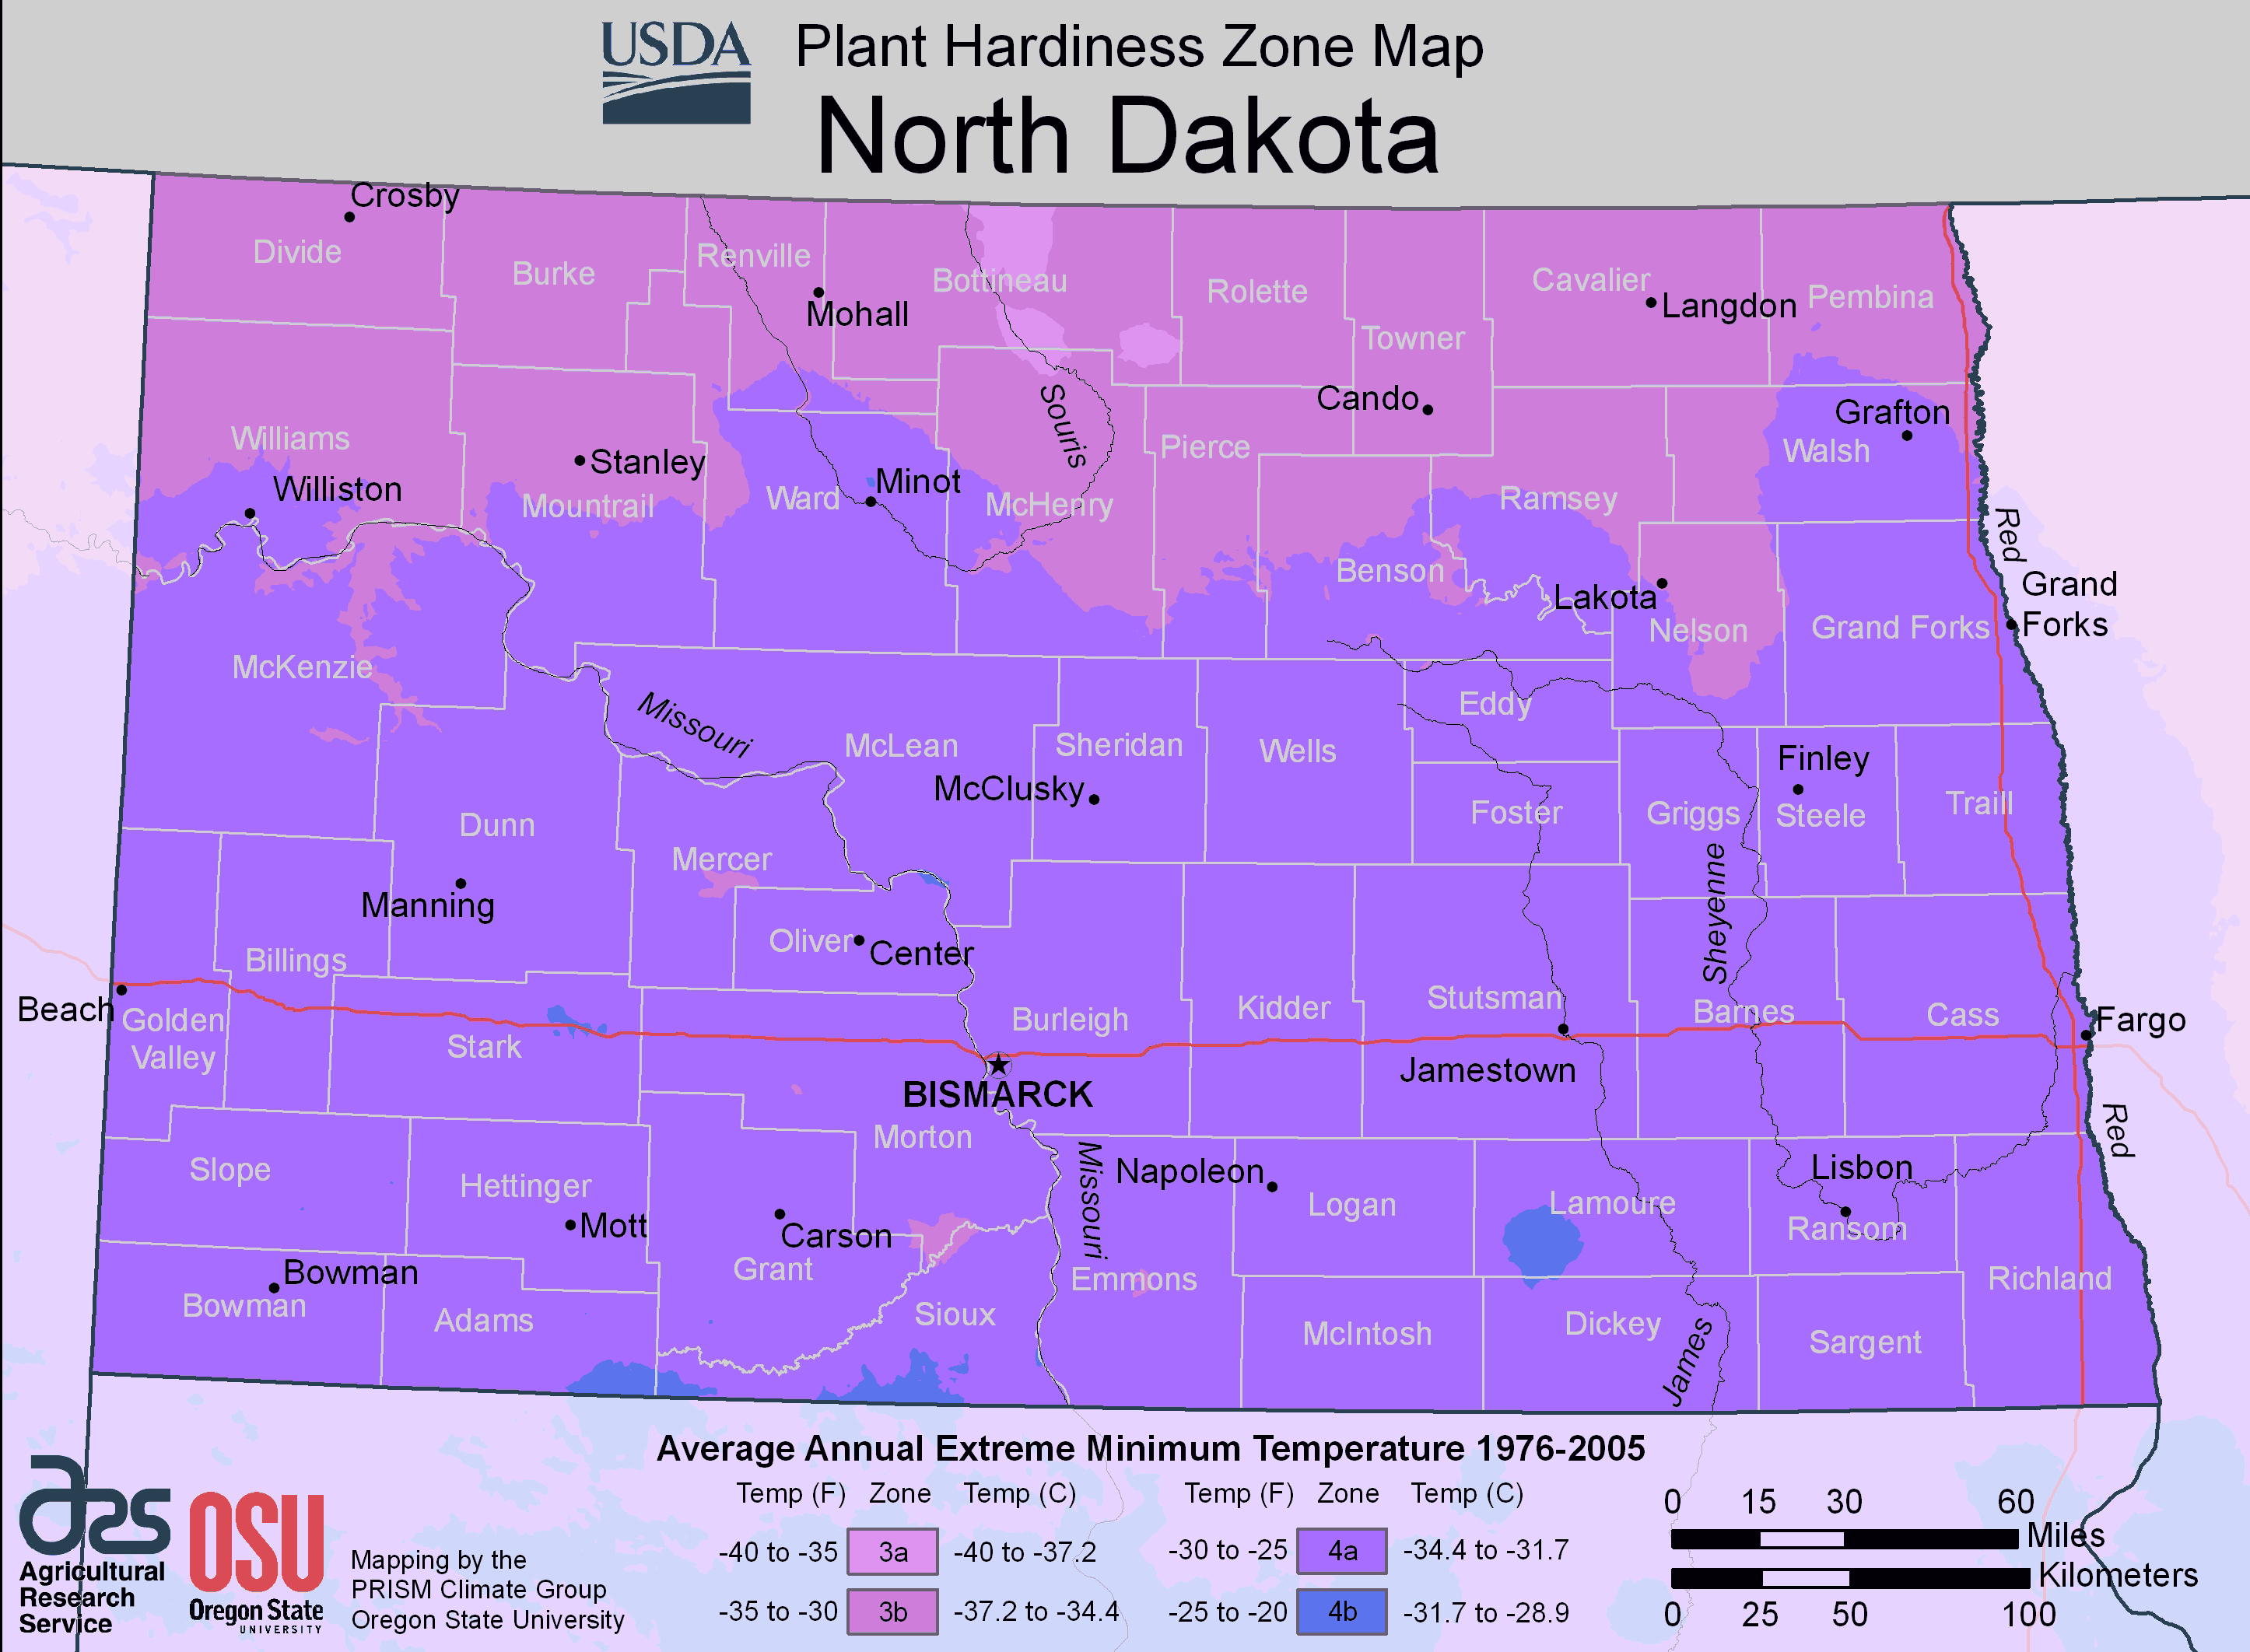 North Dakota Plant Hardiness Zone Map Mapsofnet - Maps of north dakota